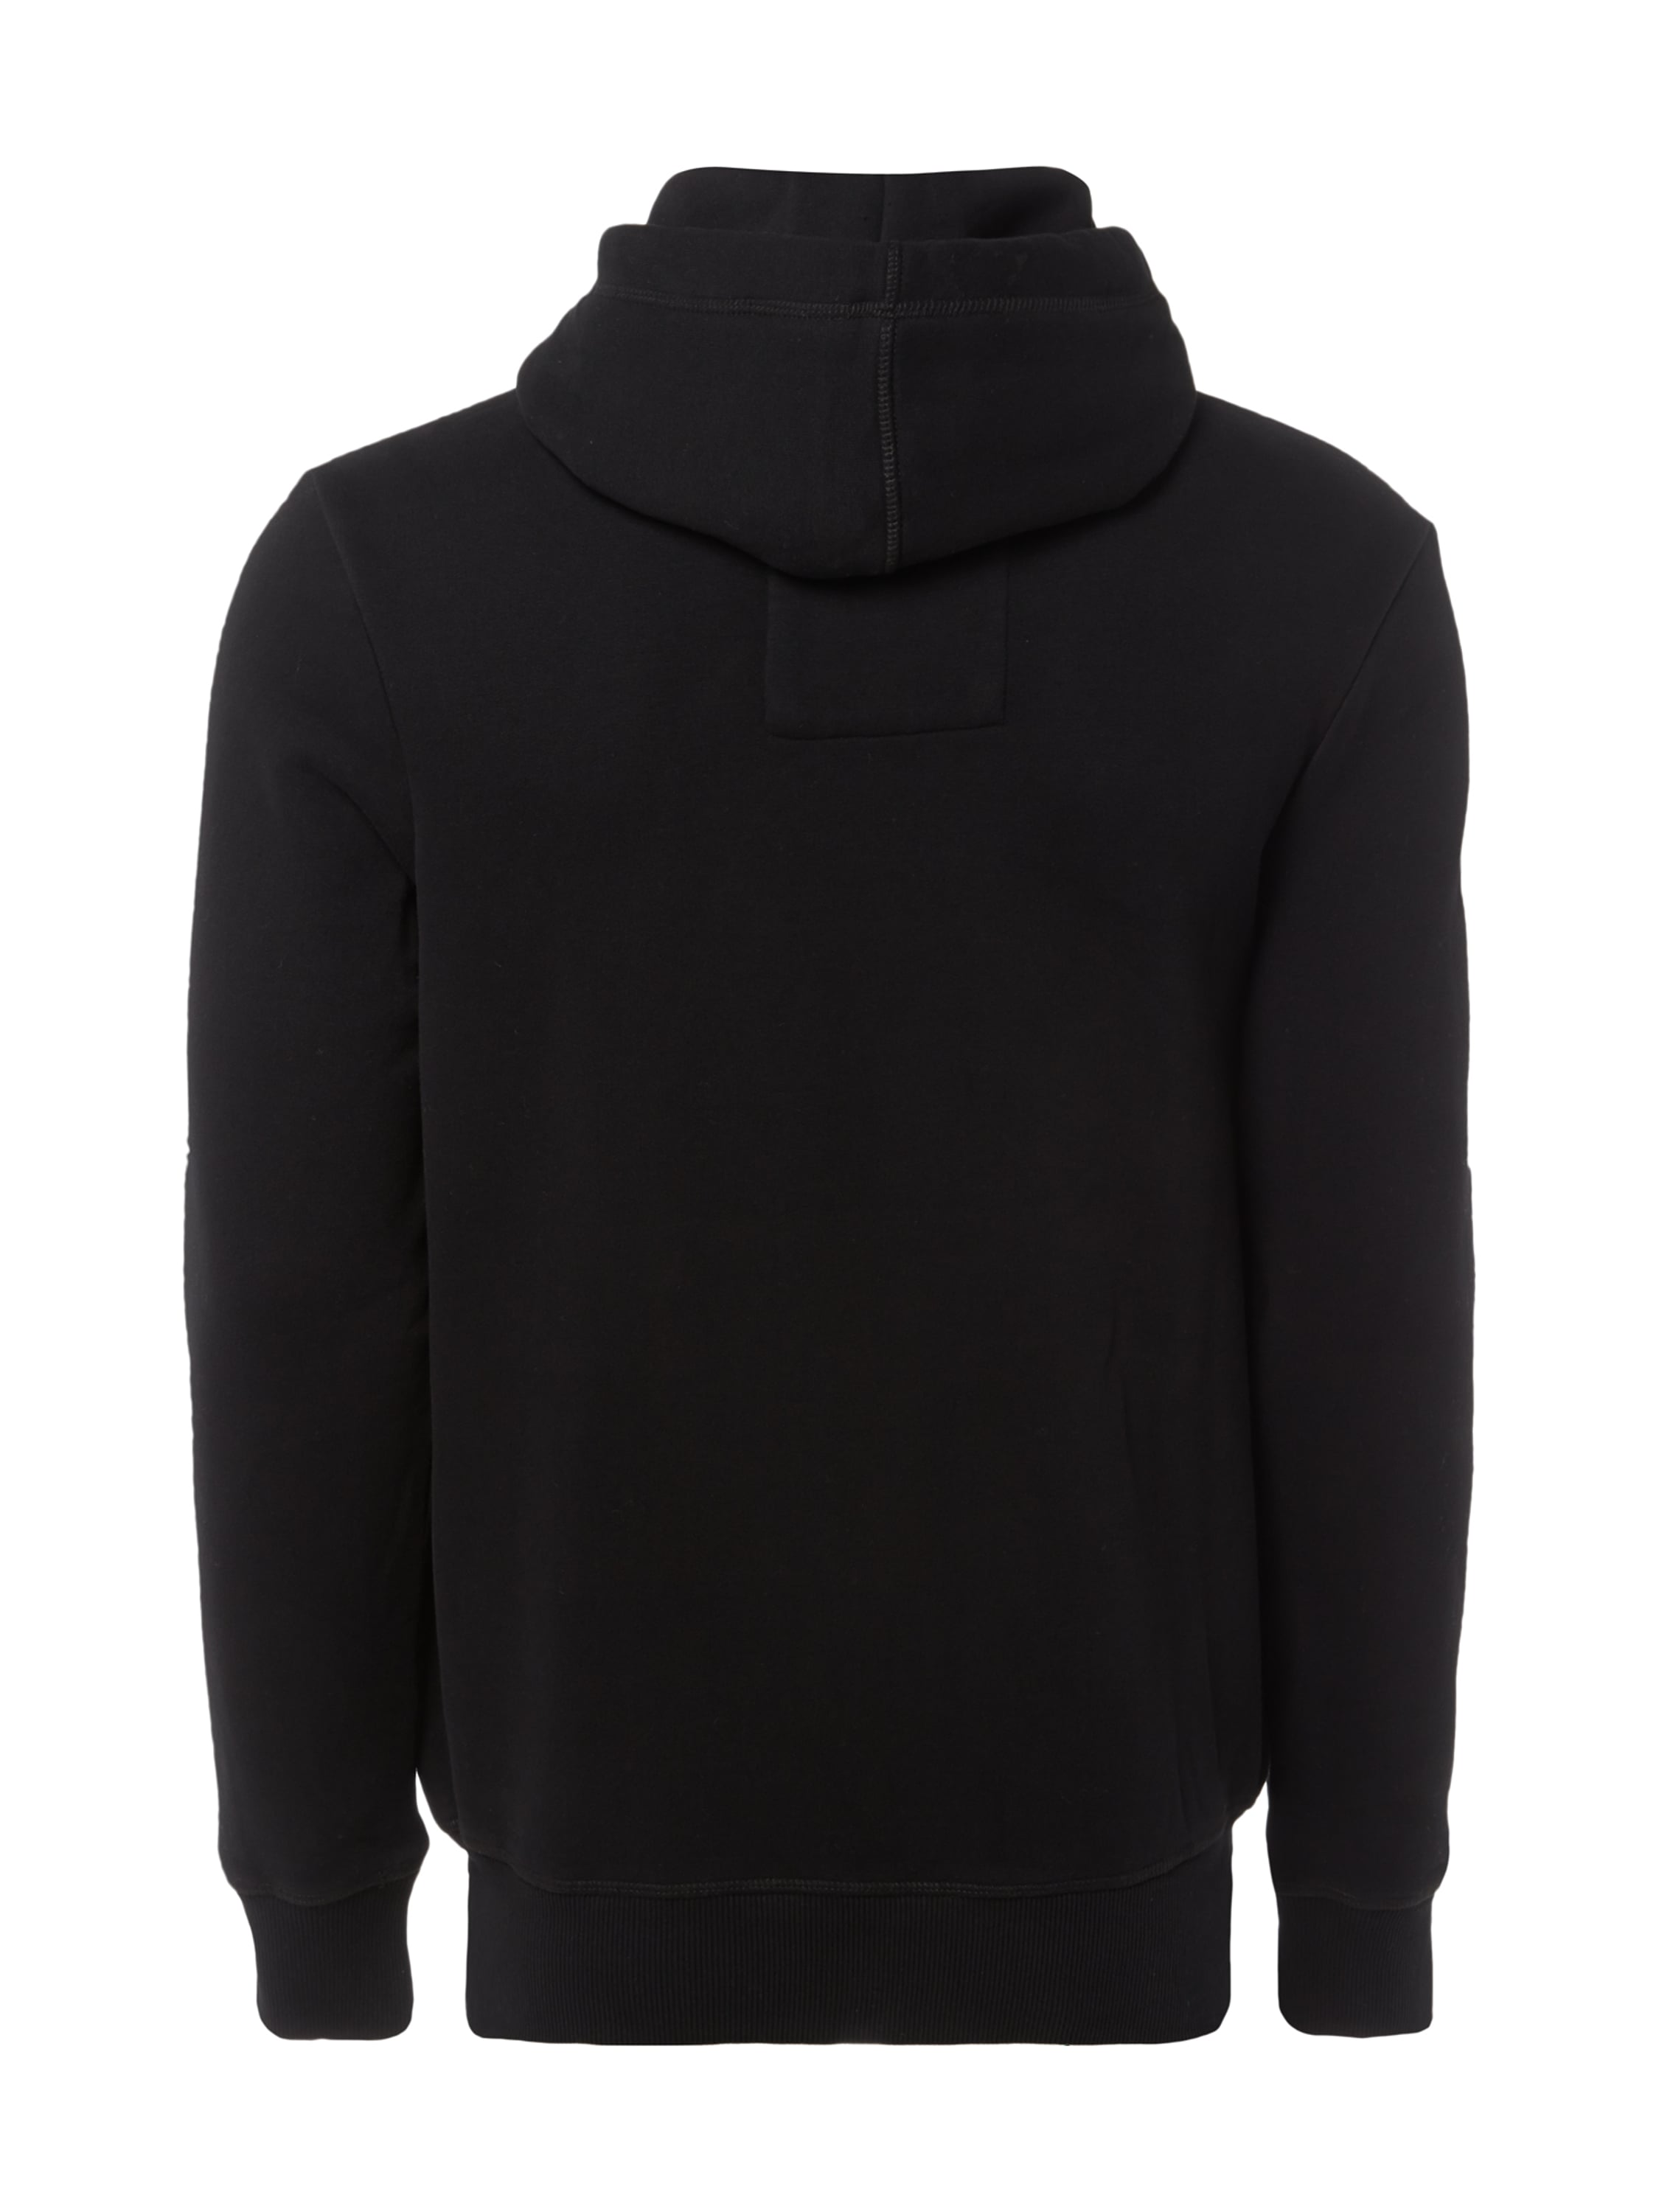 camp david hoodie mit gro er logo stickerei in grau schwarz online kaufen 9571748 p c. Black Bedroom Furniture Sets. Home Design Ideas